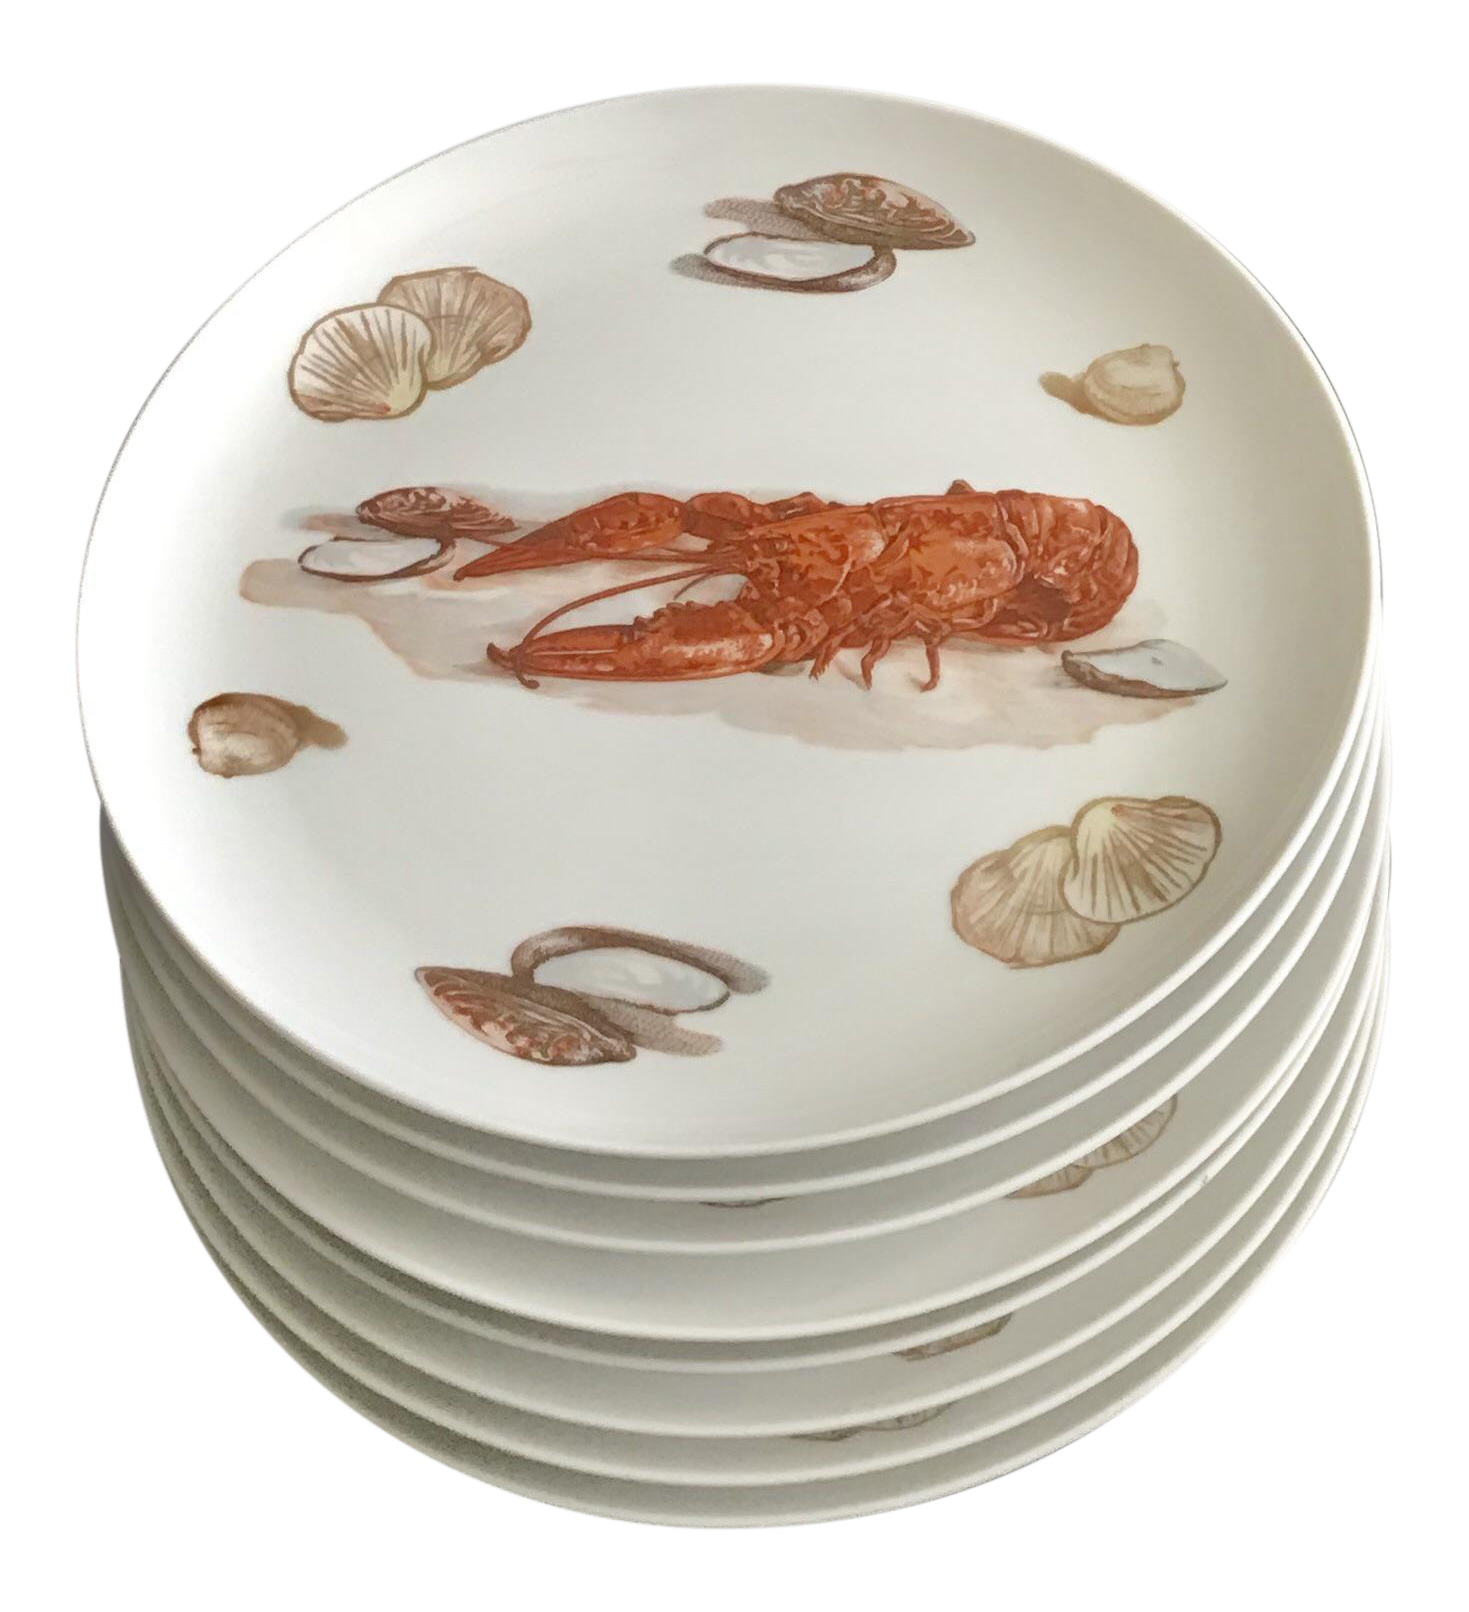 Japanese Lobster u0026 Clam Dinner Plates - Set of 8  sc 1 st  Chairish & Japanese Lobster u0026 Clam Dinner Plates - Set of 8 | Chairish